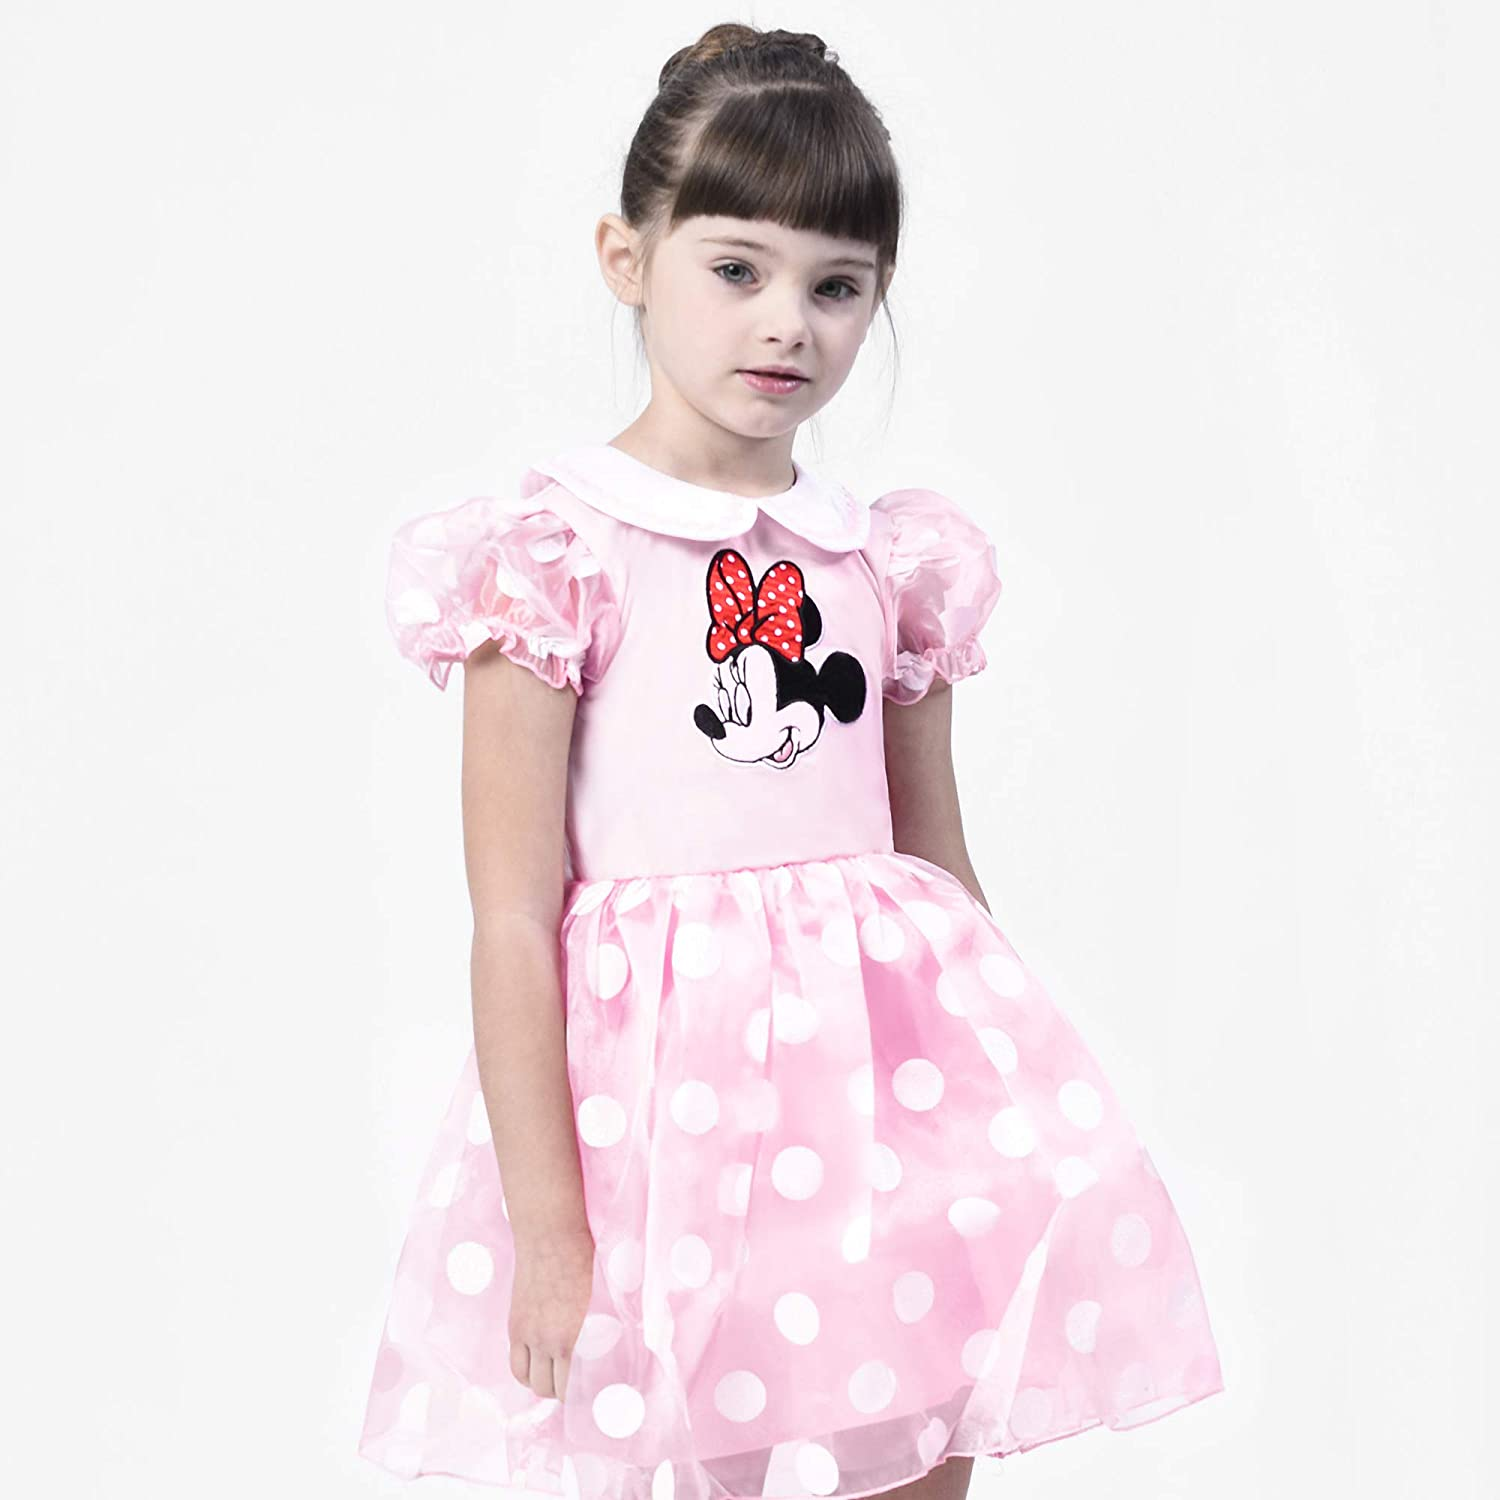 BIEKOV Girls Princess Dress up Costume Little Kids Pretend Play Outfit Birthday Gift